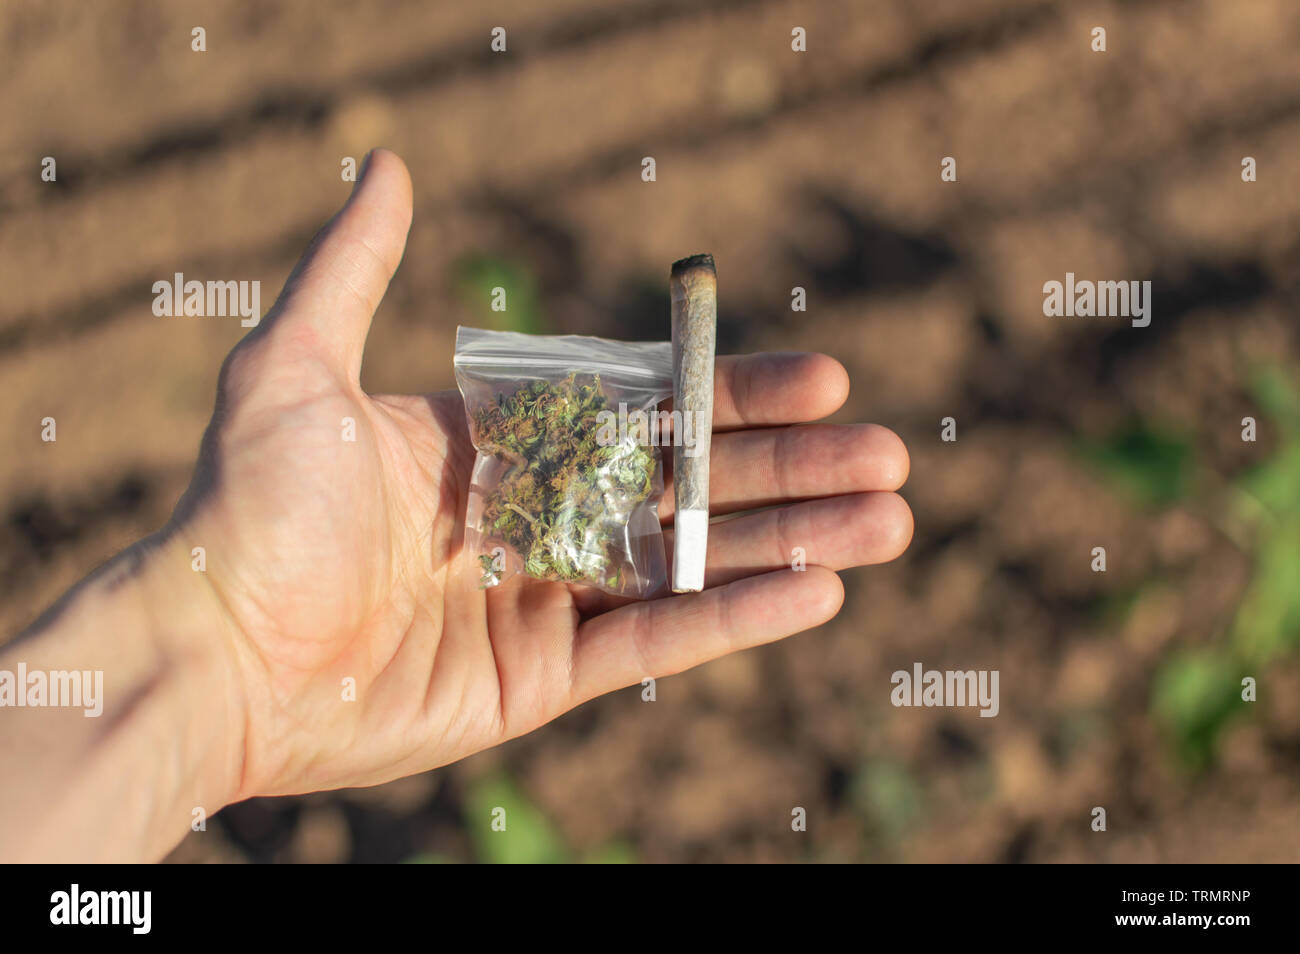 Smoking Marijuana In A Natural Place Hand Of A Man Showing A Big Marijuana Joint And A Plastic Bag With Weed During A Sunny Day On The Street Stock Photo Alamy